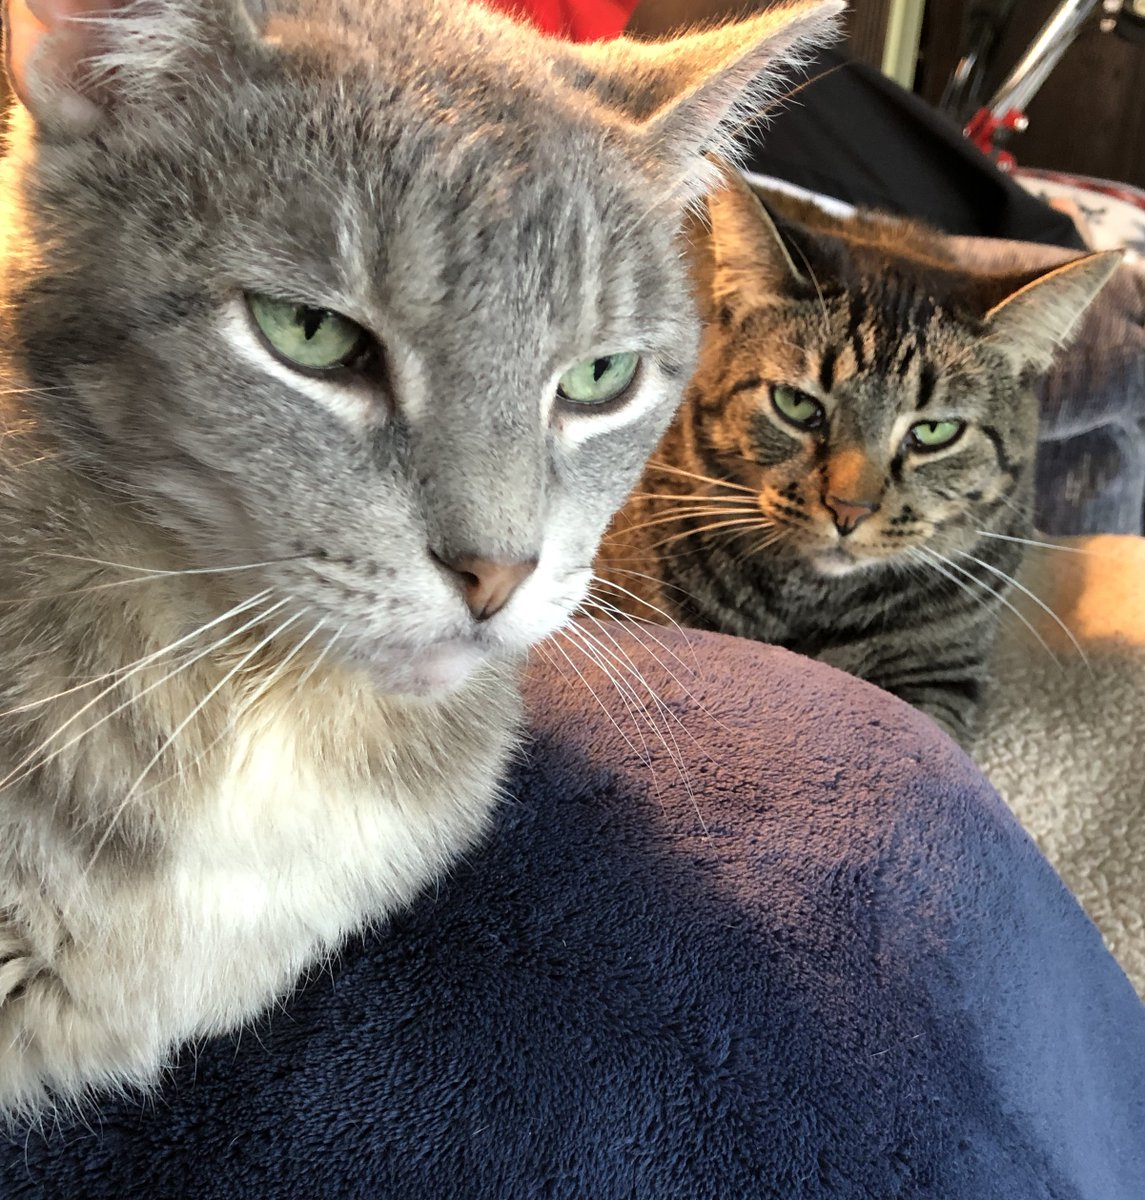 #catsjudgingmarjorie MTG makes my cats angry.